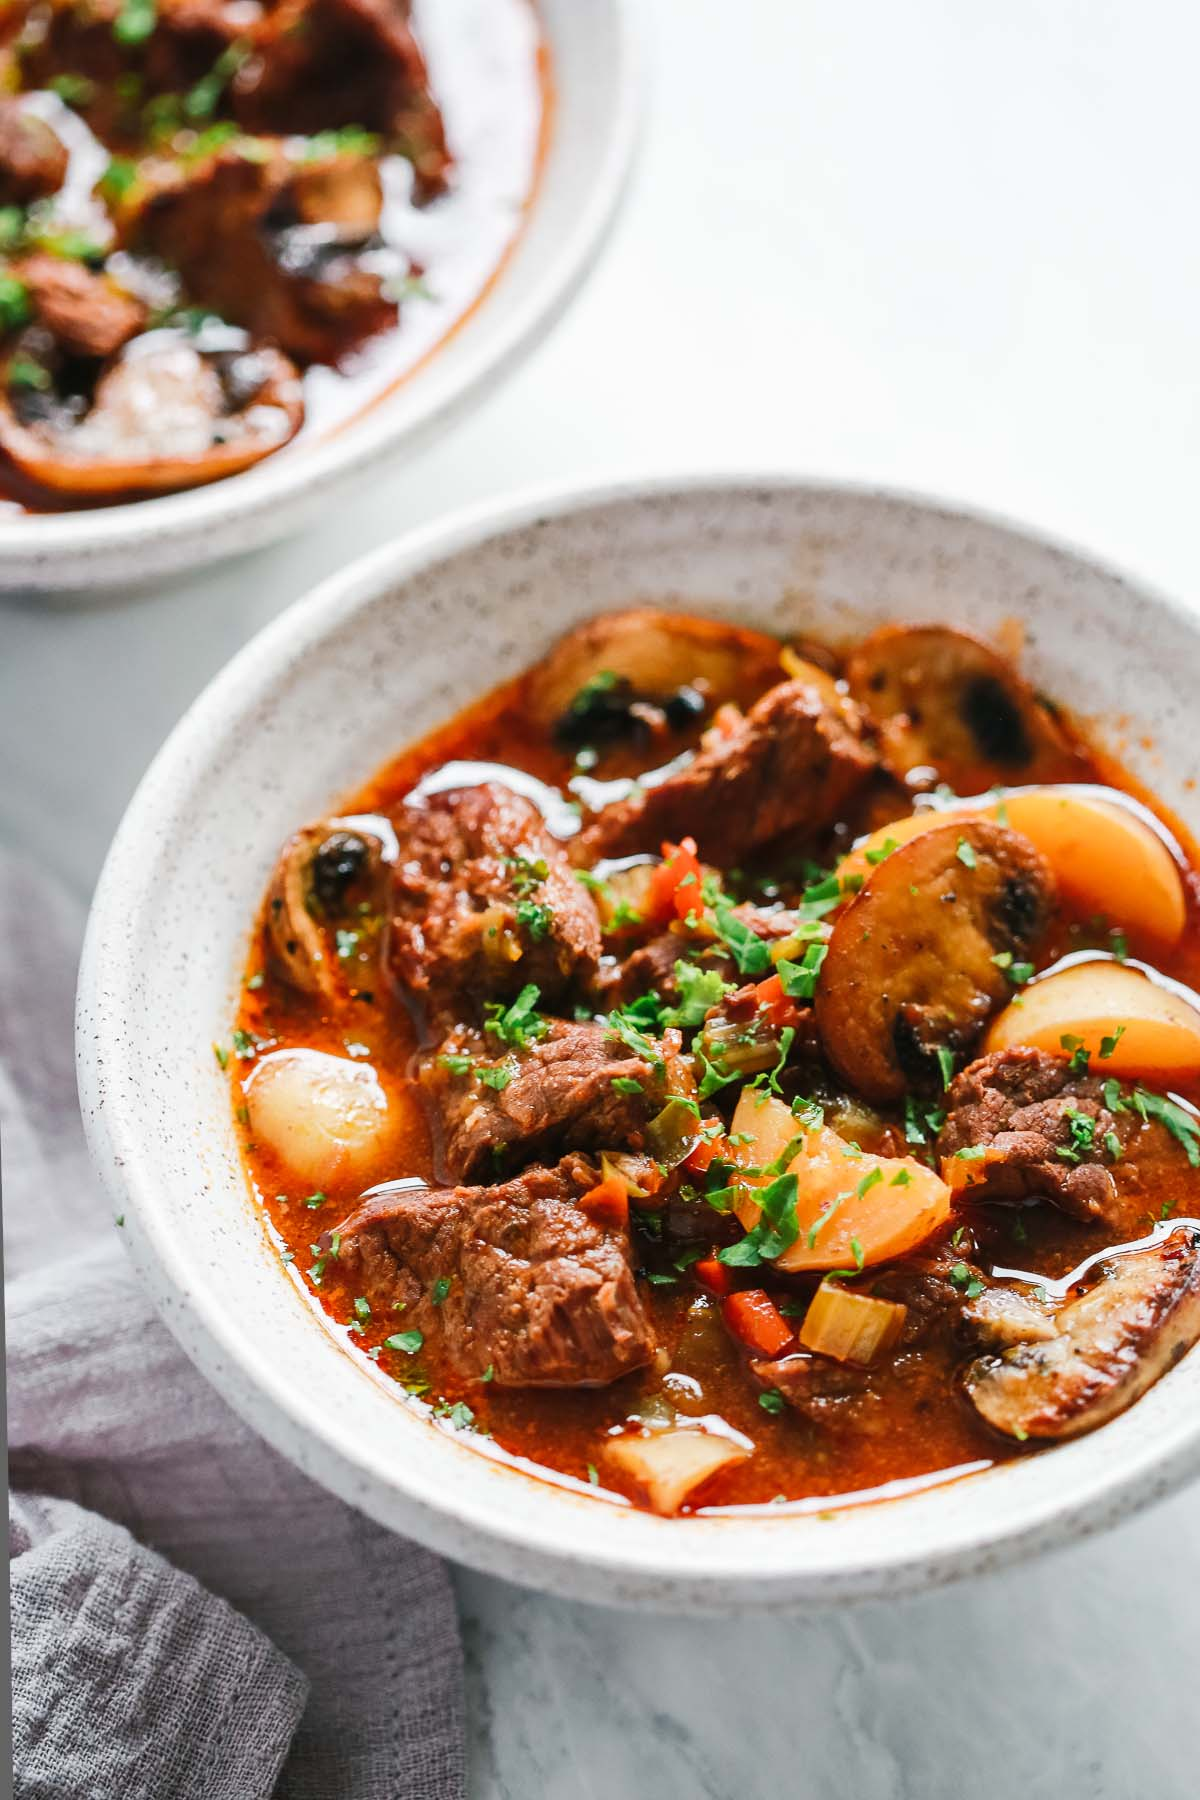 Instant Pot Beef Stew Recipe (Whole30 & Paleo)